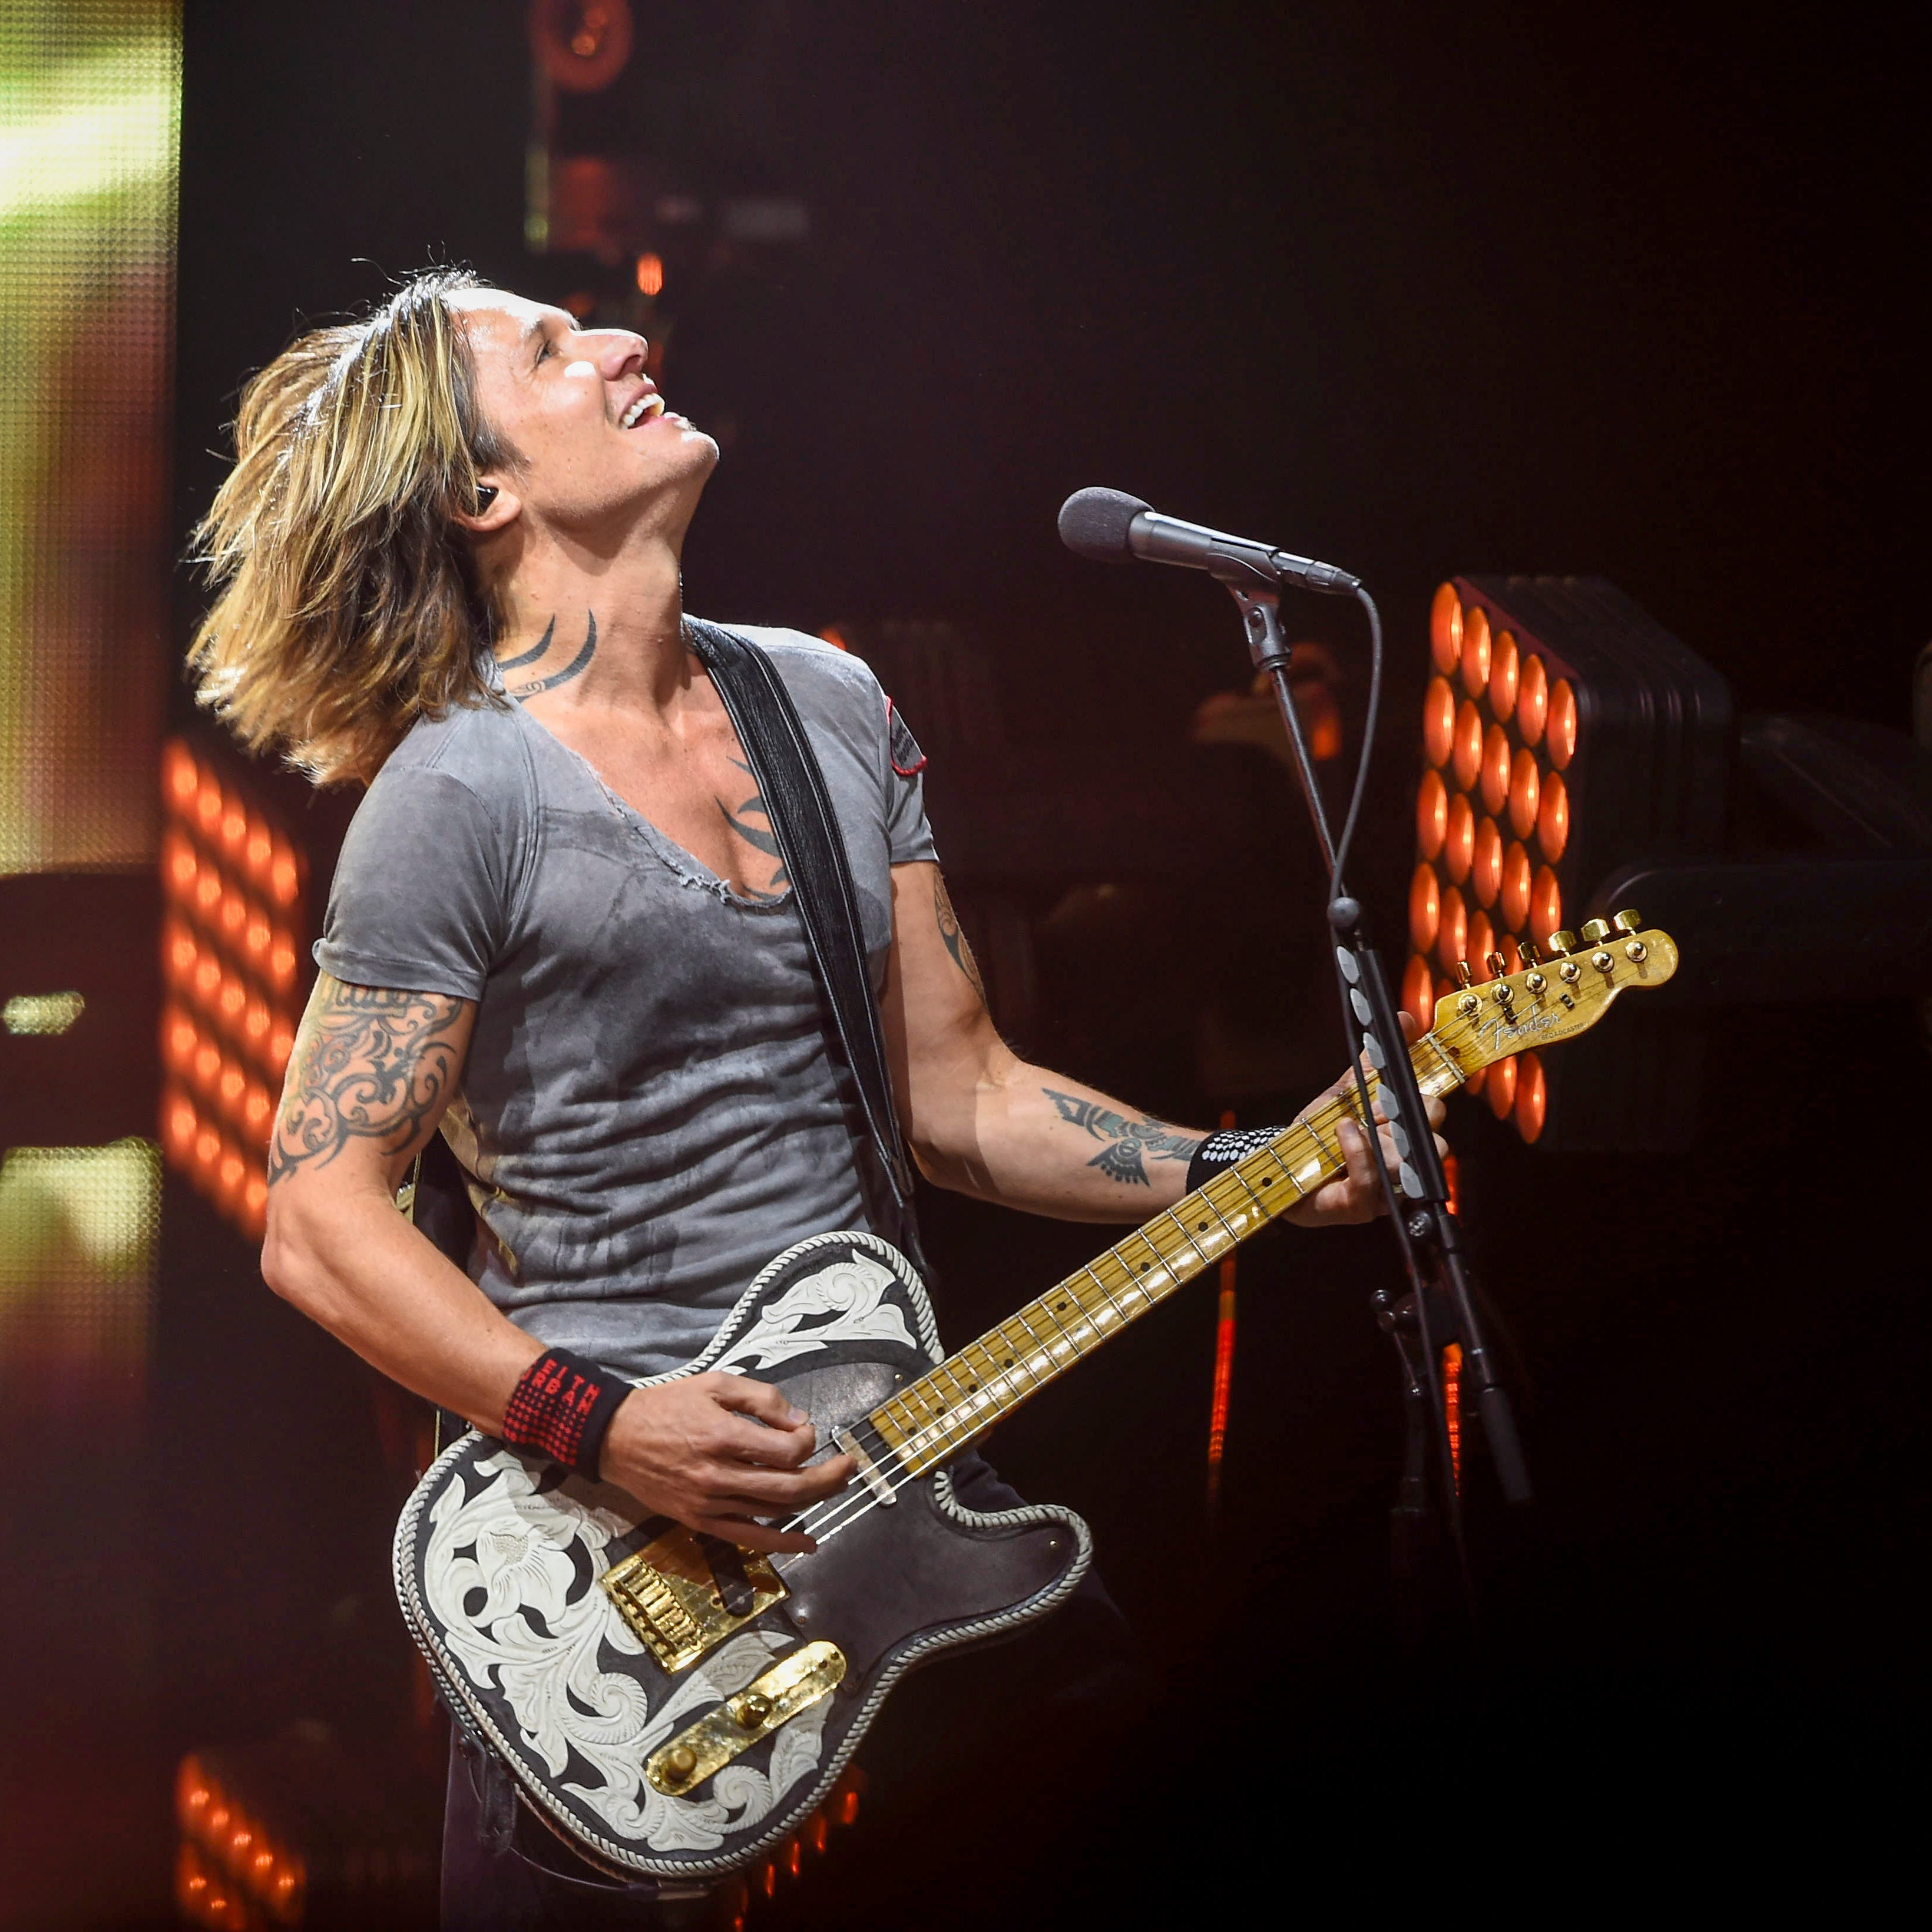 Keith Urban show recap: Nicole, Reese, Carrie and other moments you missed